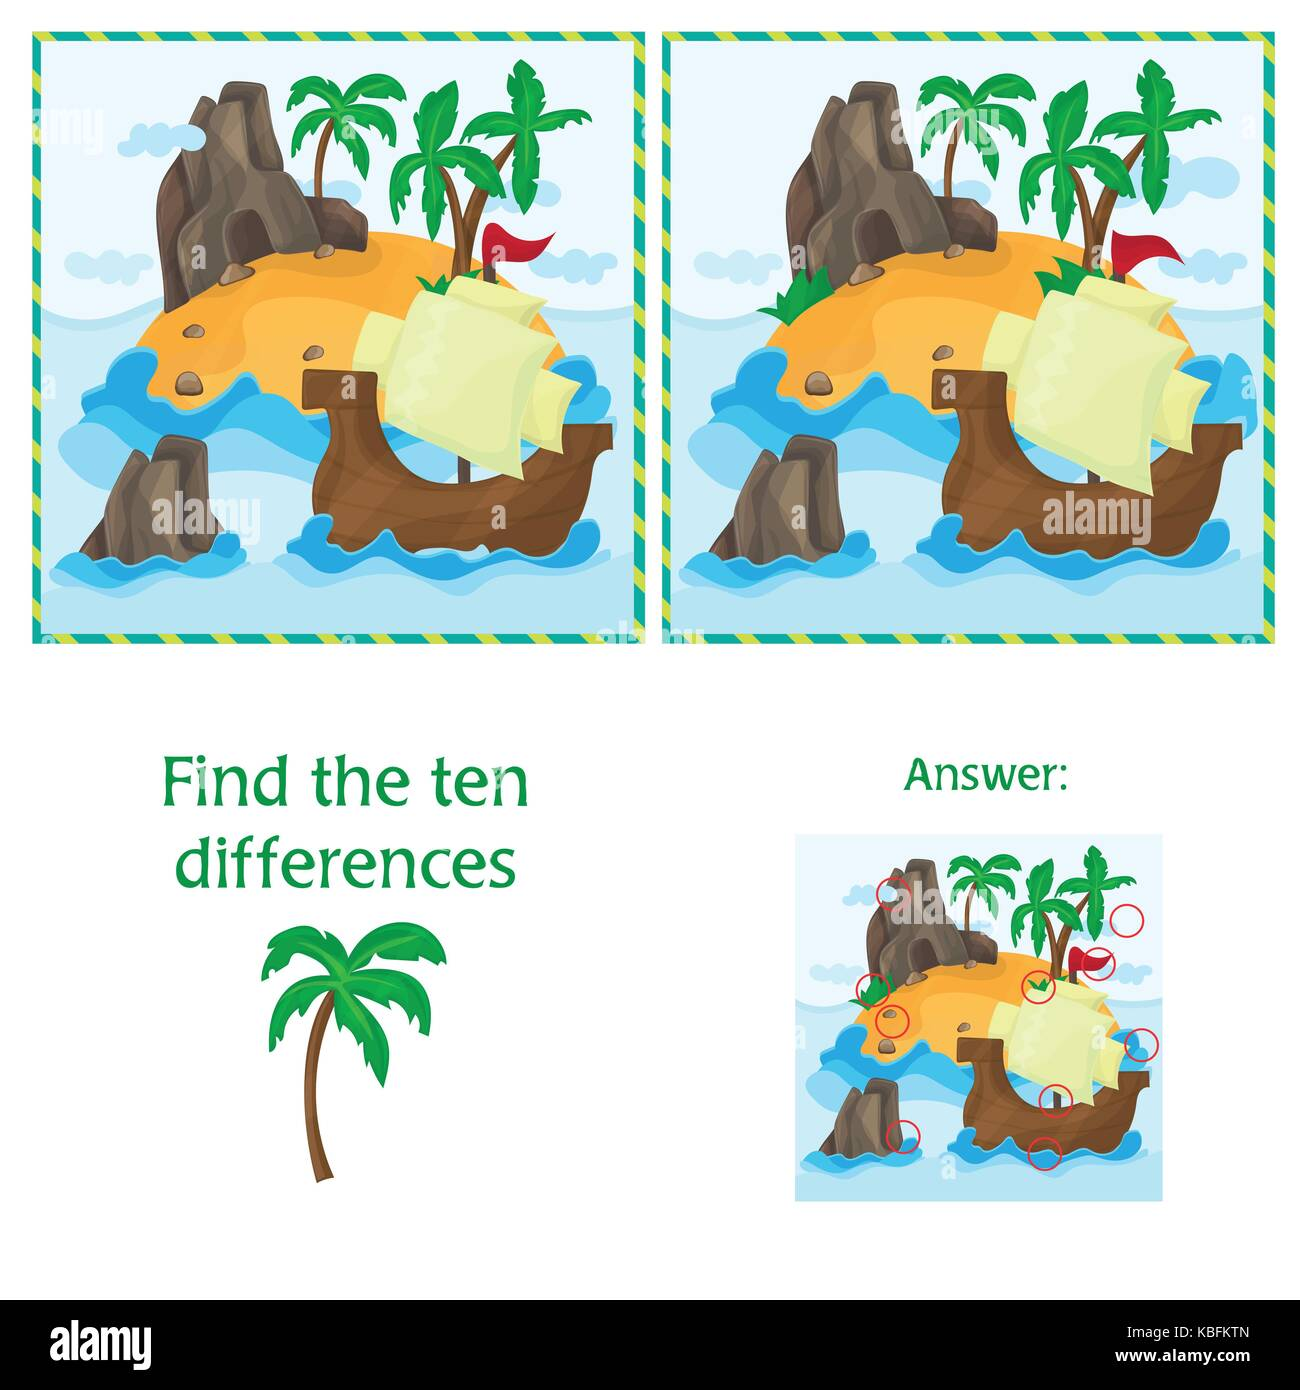 Find the ten differences between the two images with Island and Ship - Stock Vector